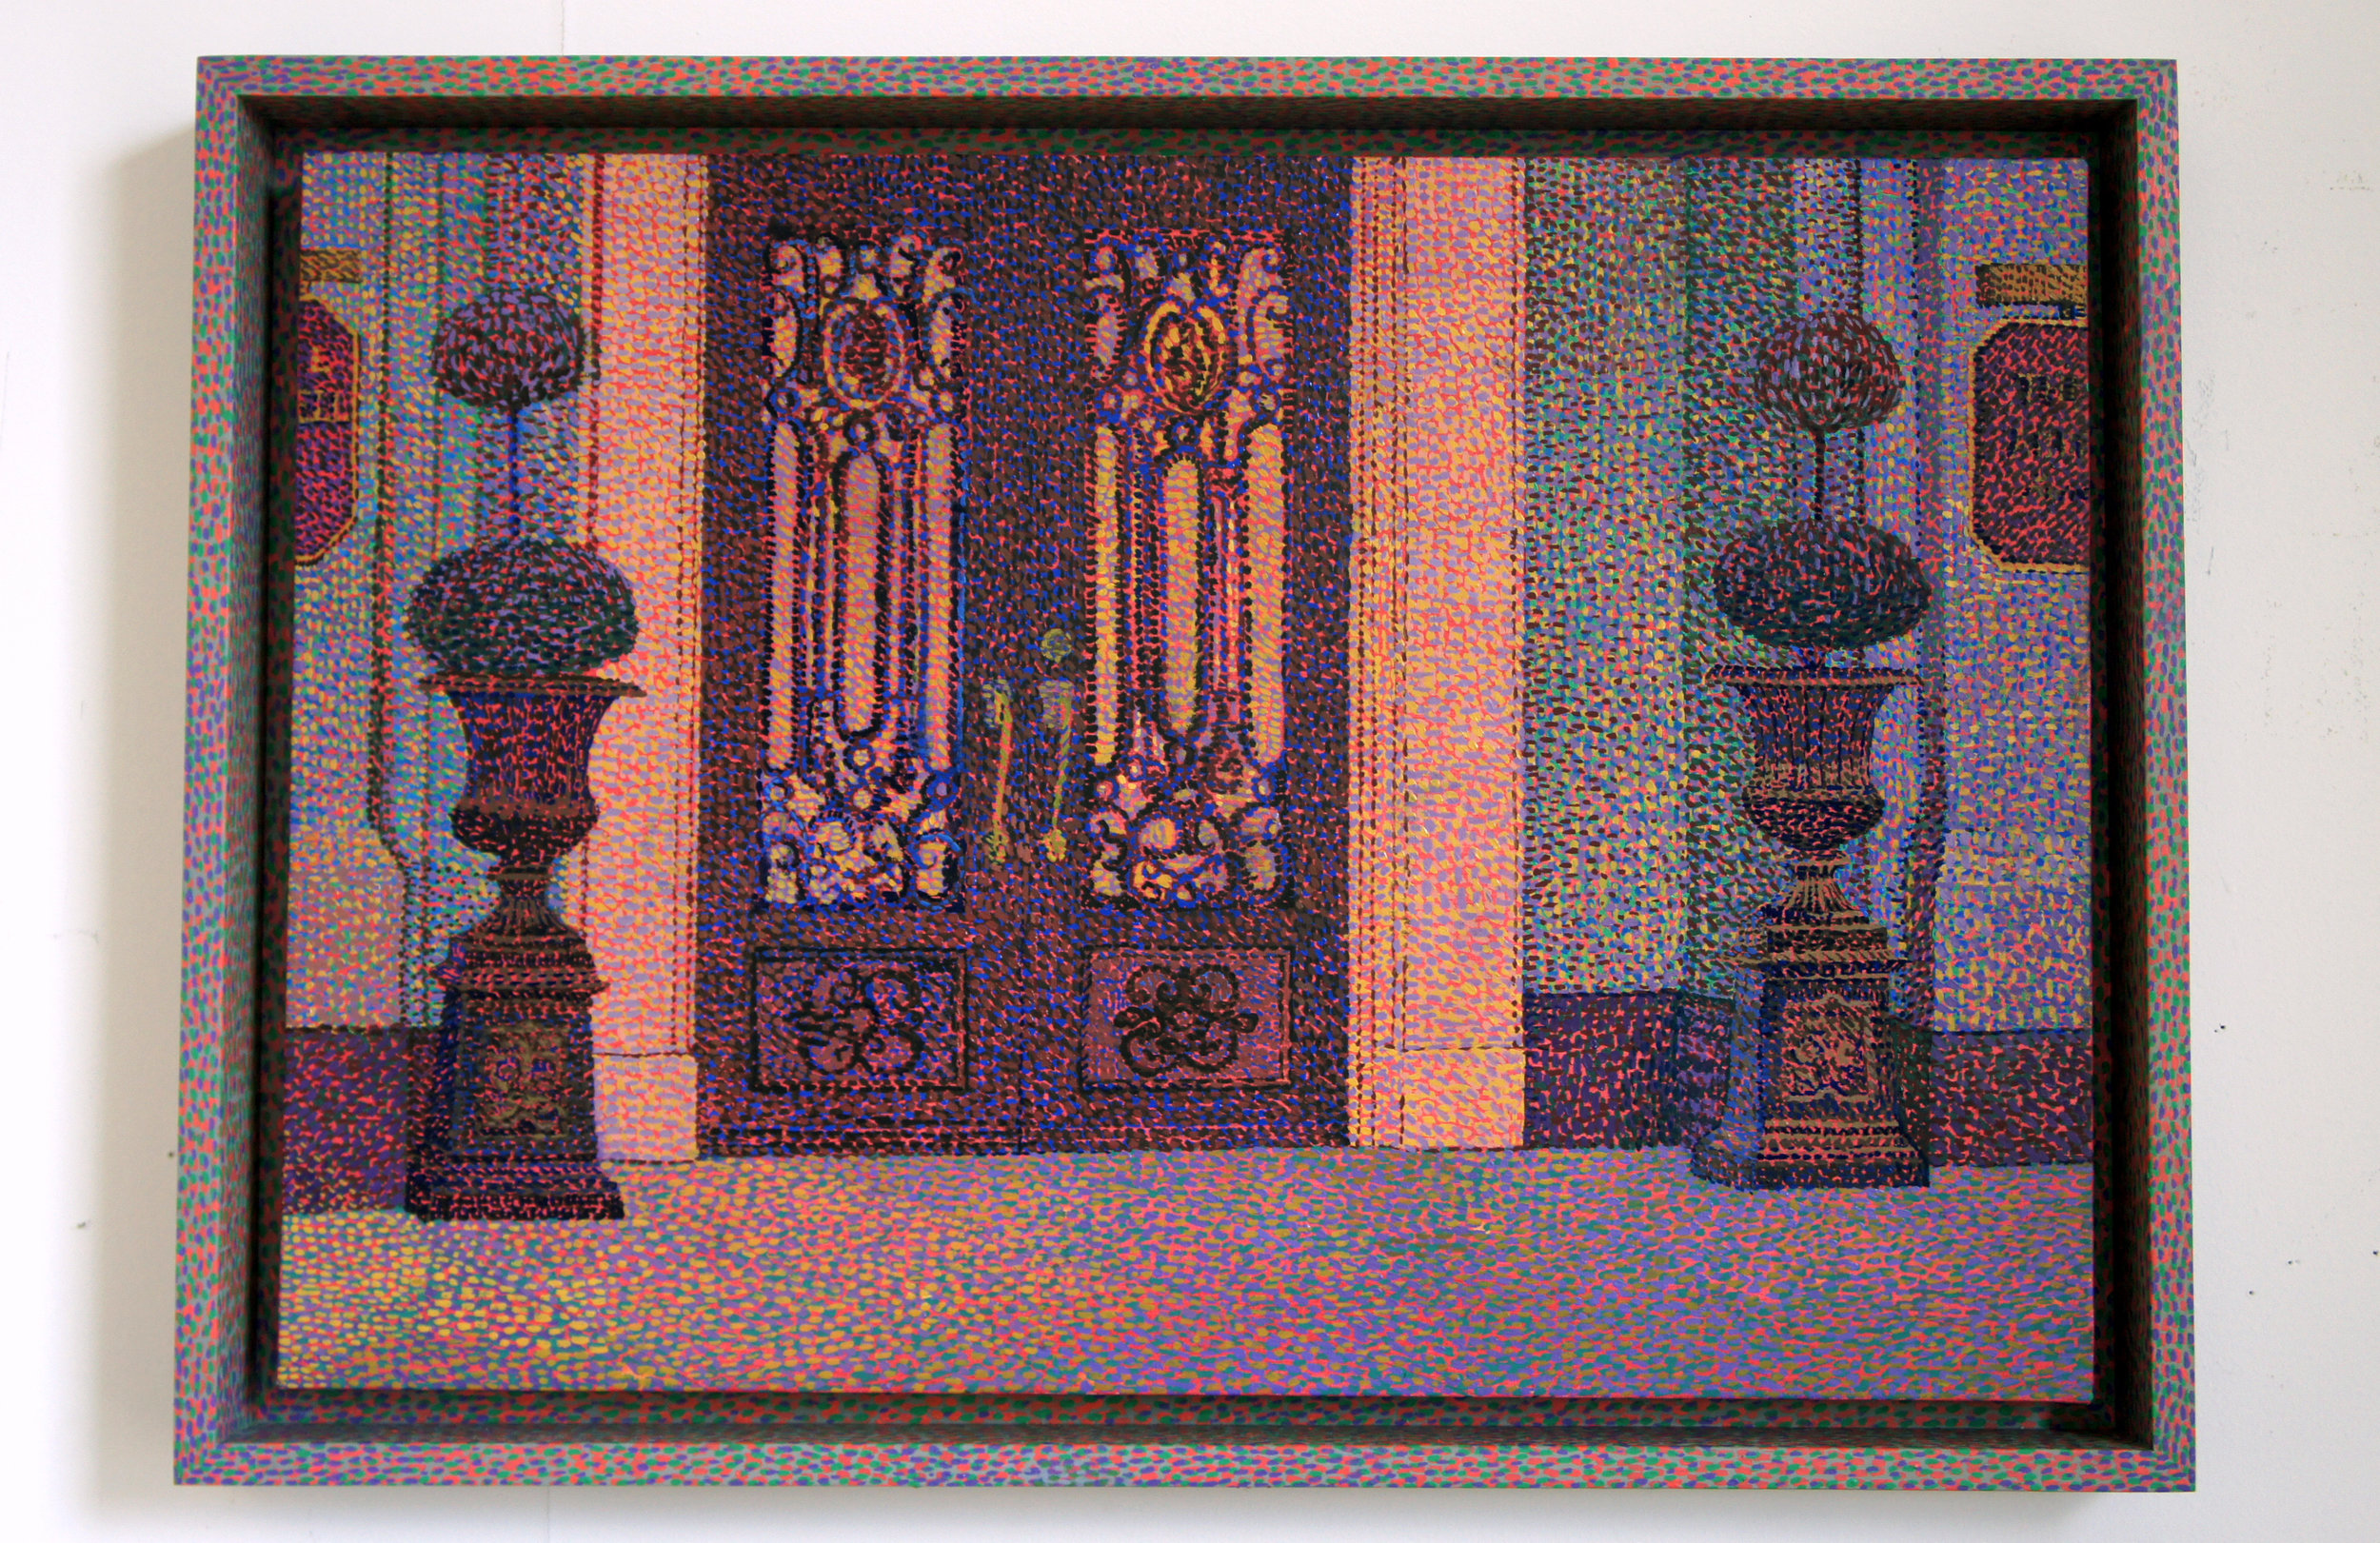 Frank E. Campbell (Gates at Dawn) , 2018, oil on linen and painted wood frame, 14.5 x 21 inches (36.8 x 53.3 centimeters)